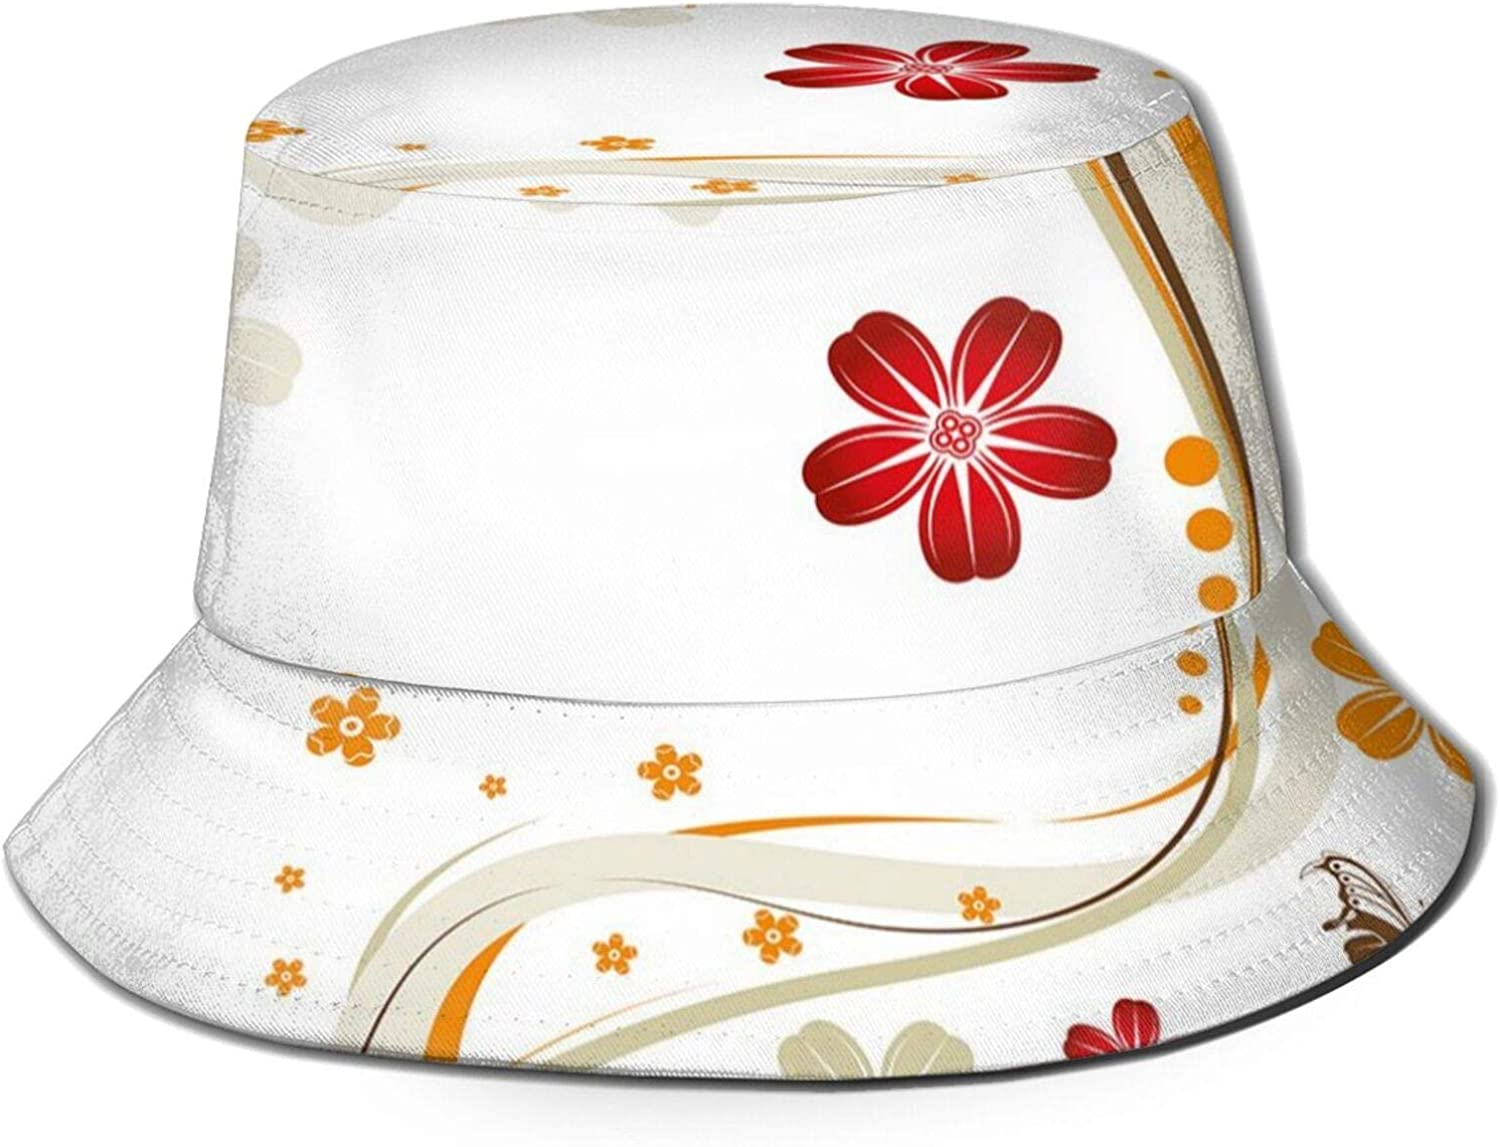 Packable Reversible Black Printed 2021 autumn and winter new Fisherman S favorite Bucket Sun Hat